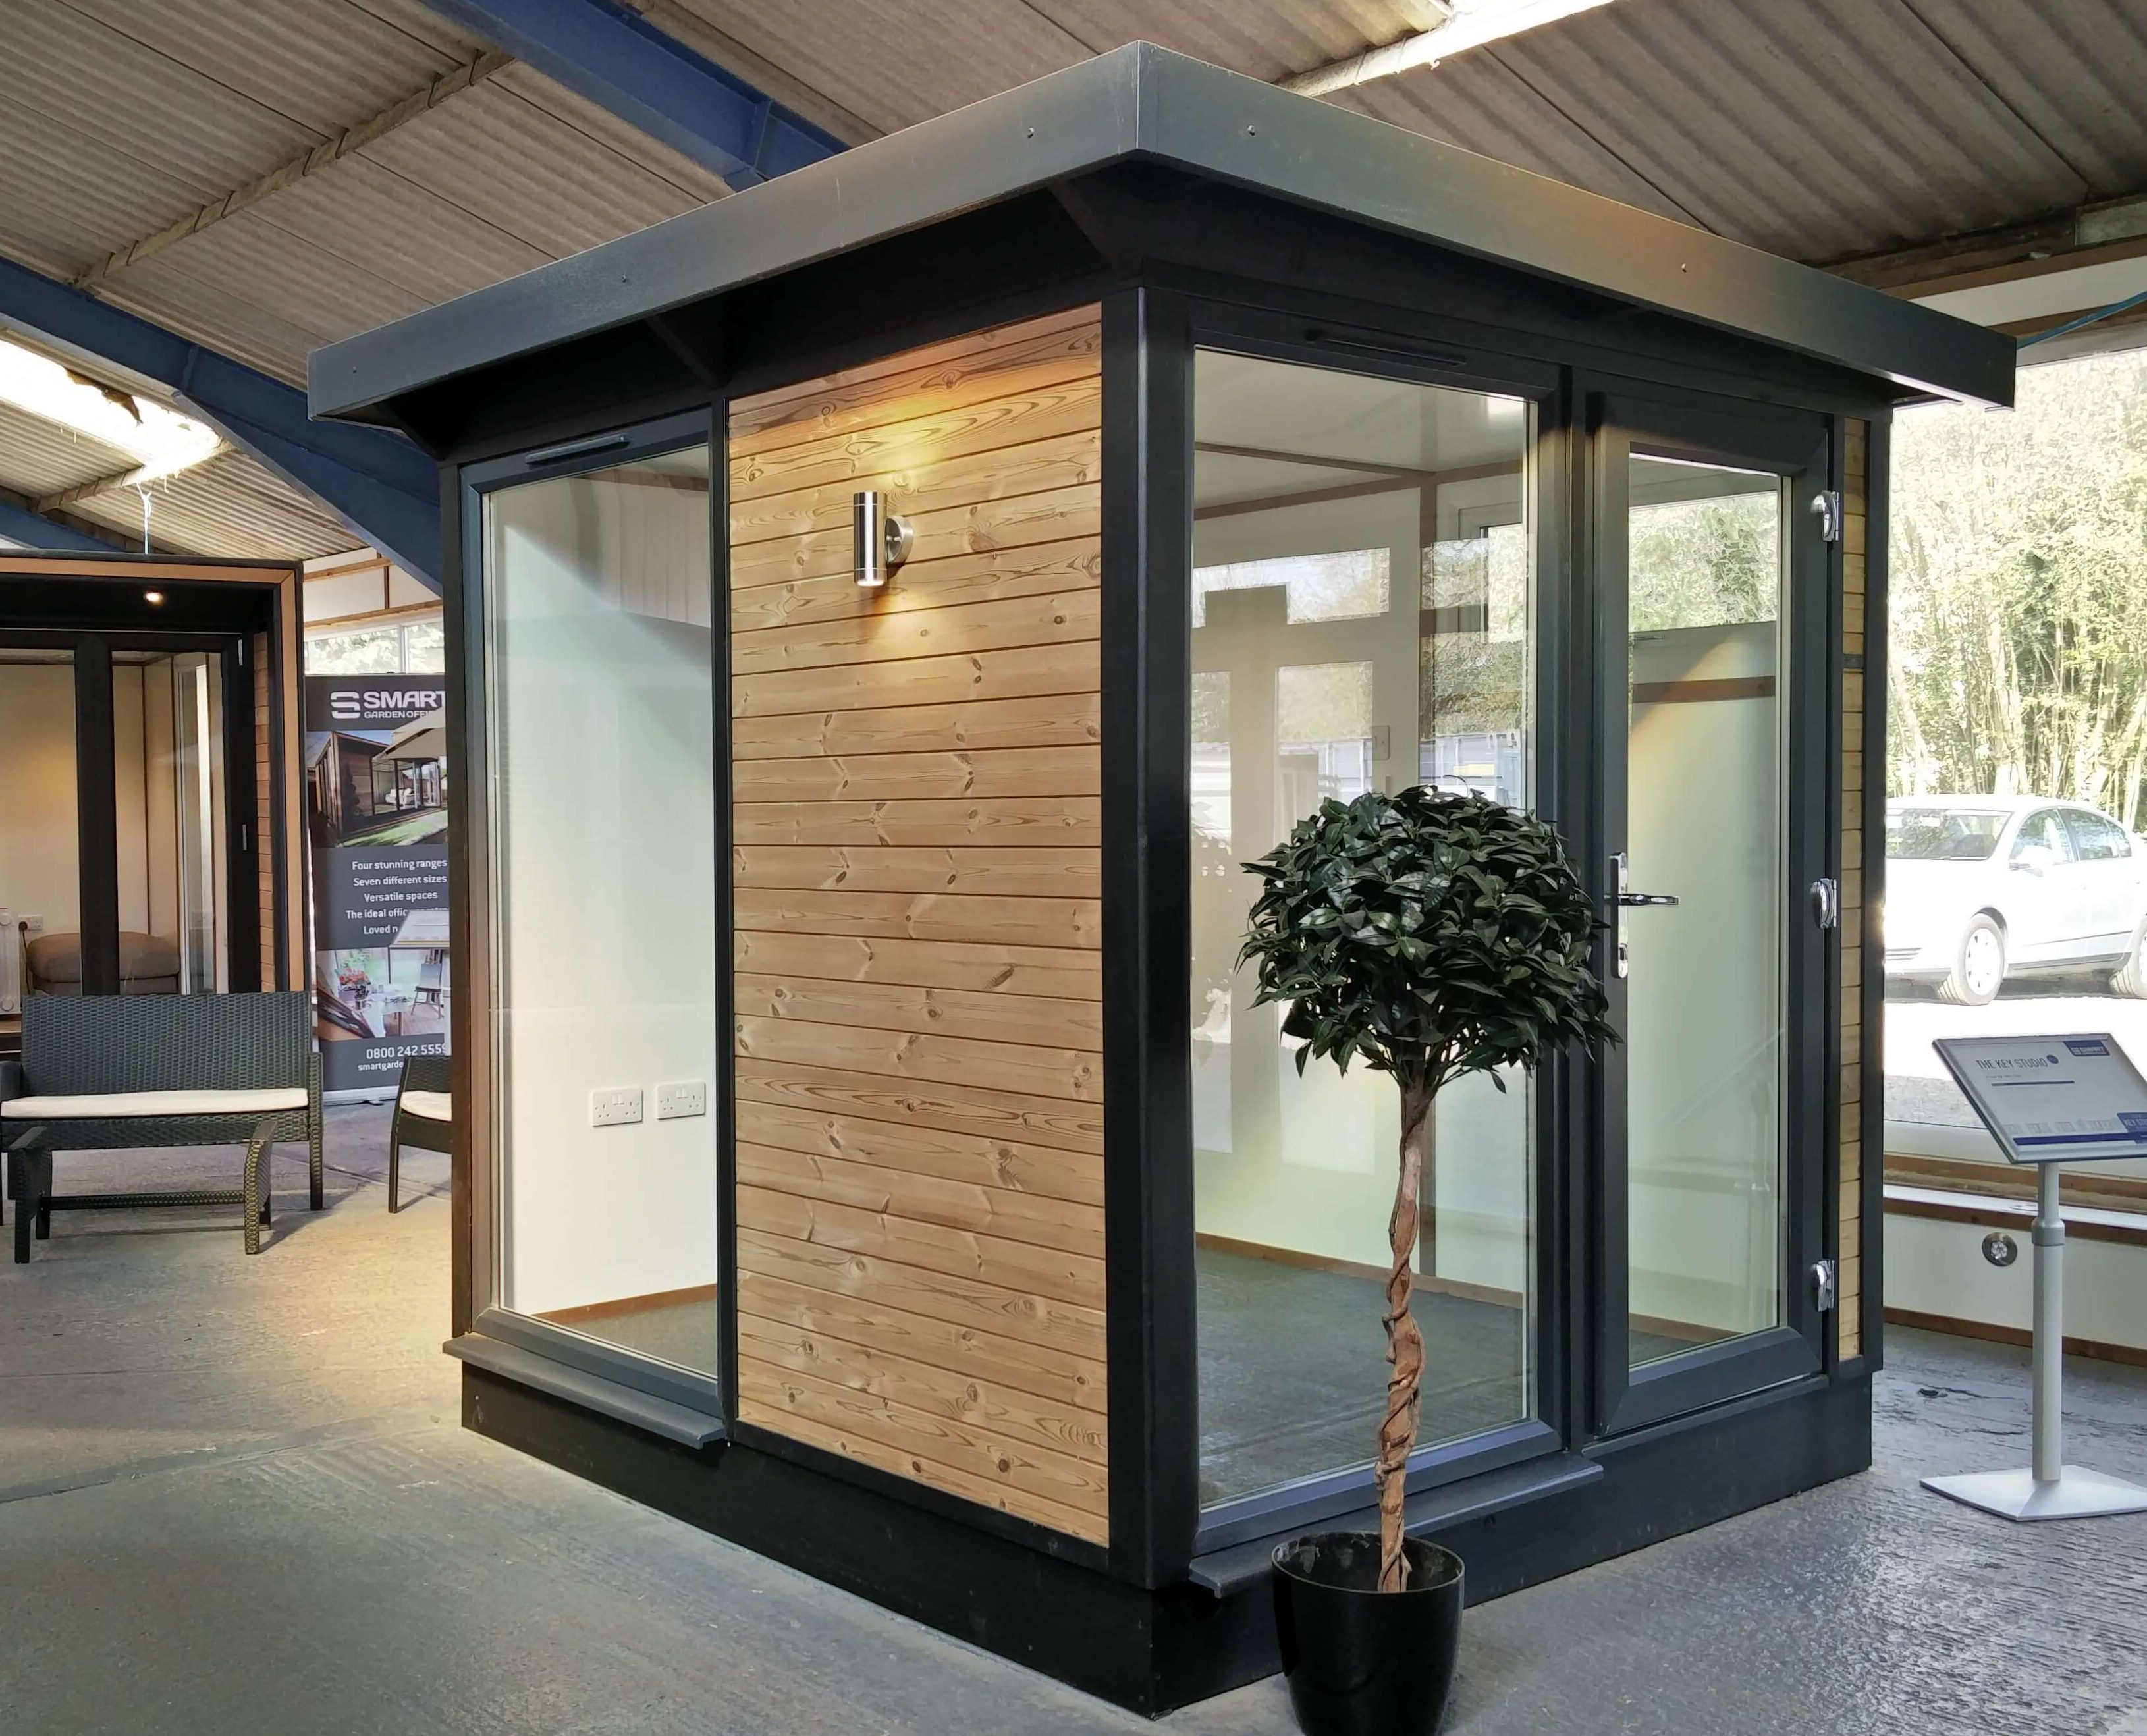 Smart Garden Office Key Studio Range